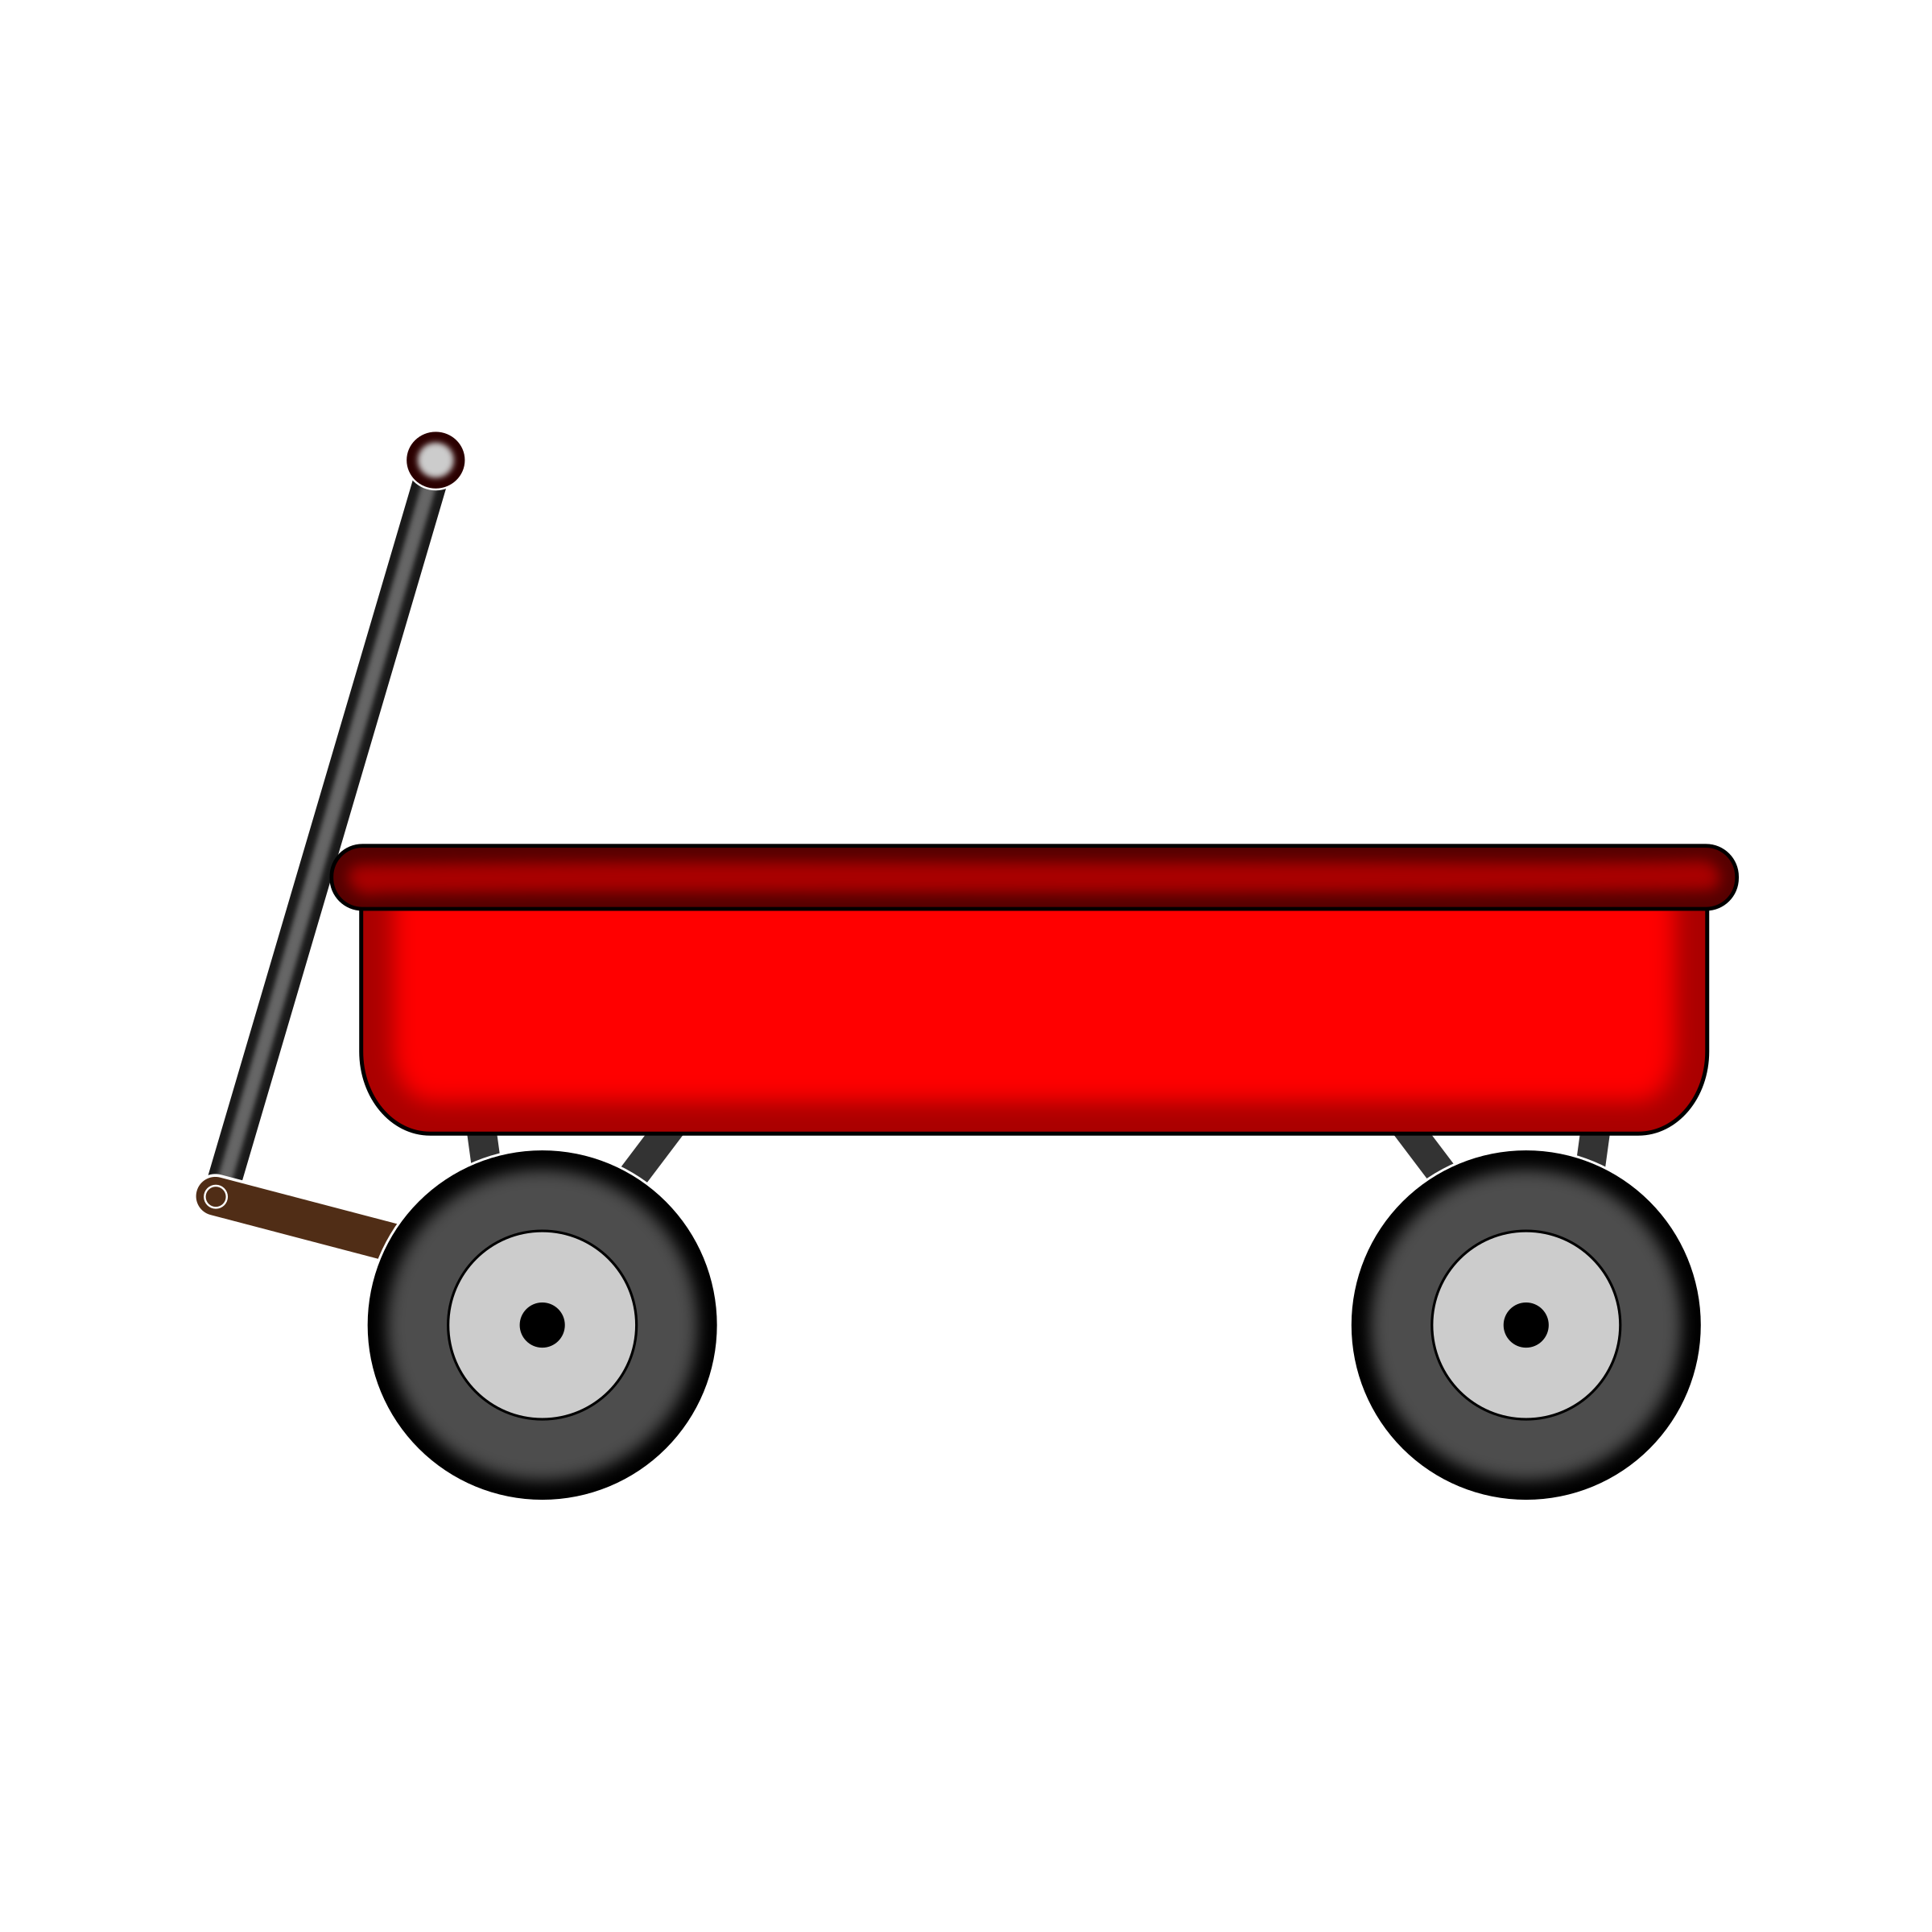 Wagon vector covered. Collection of red